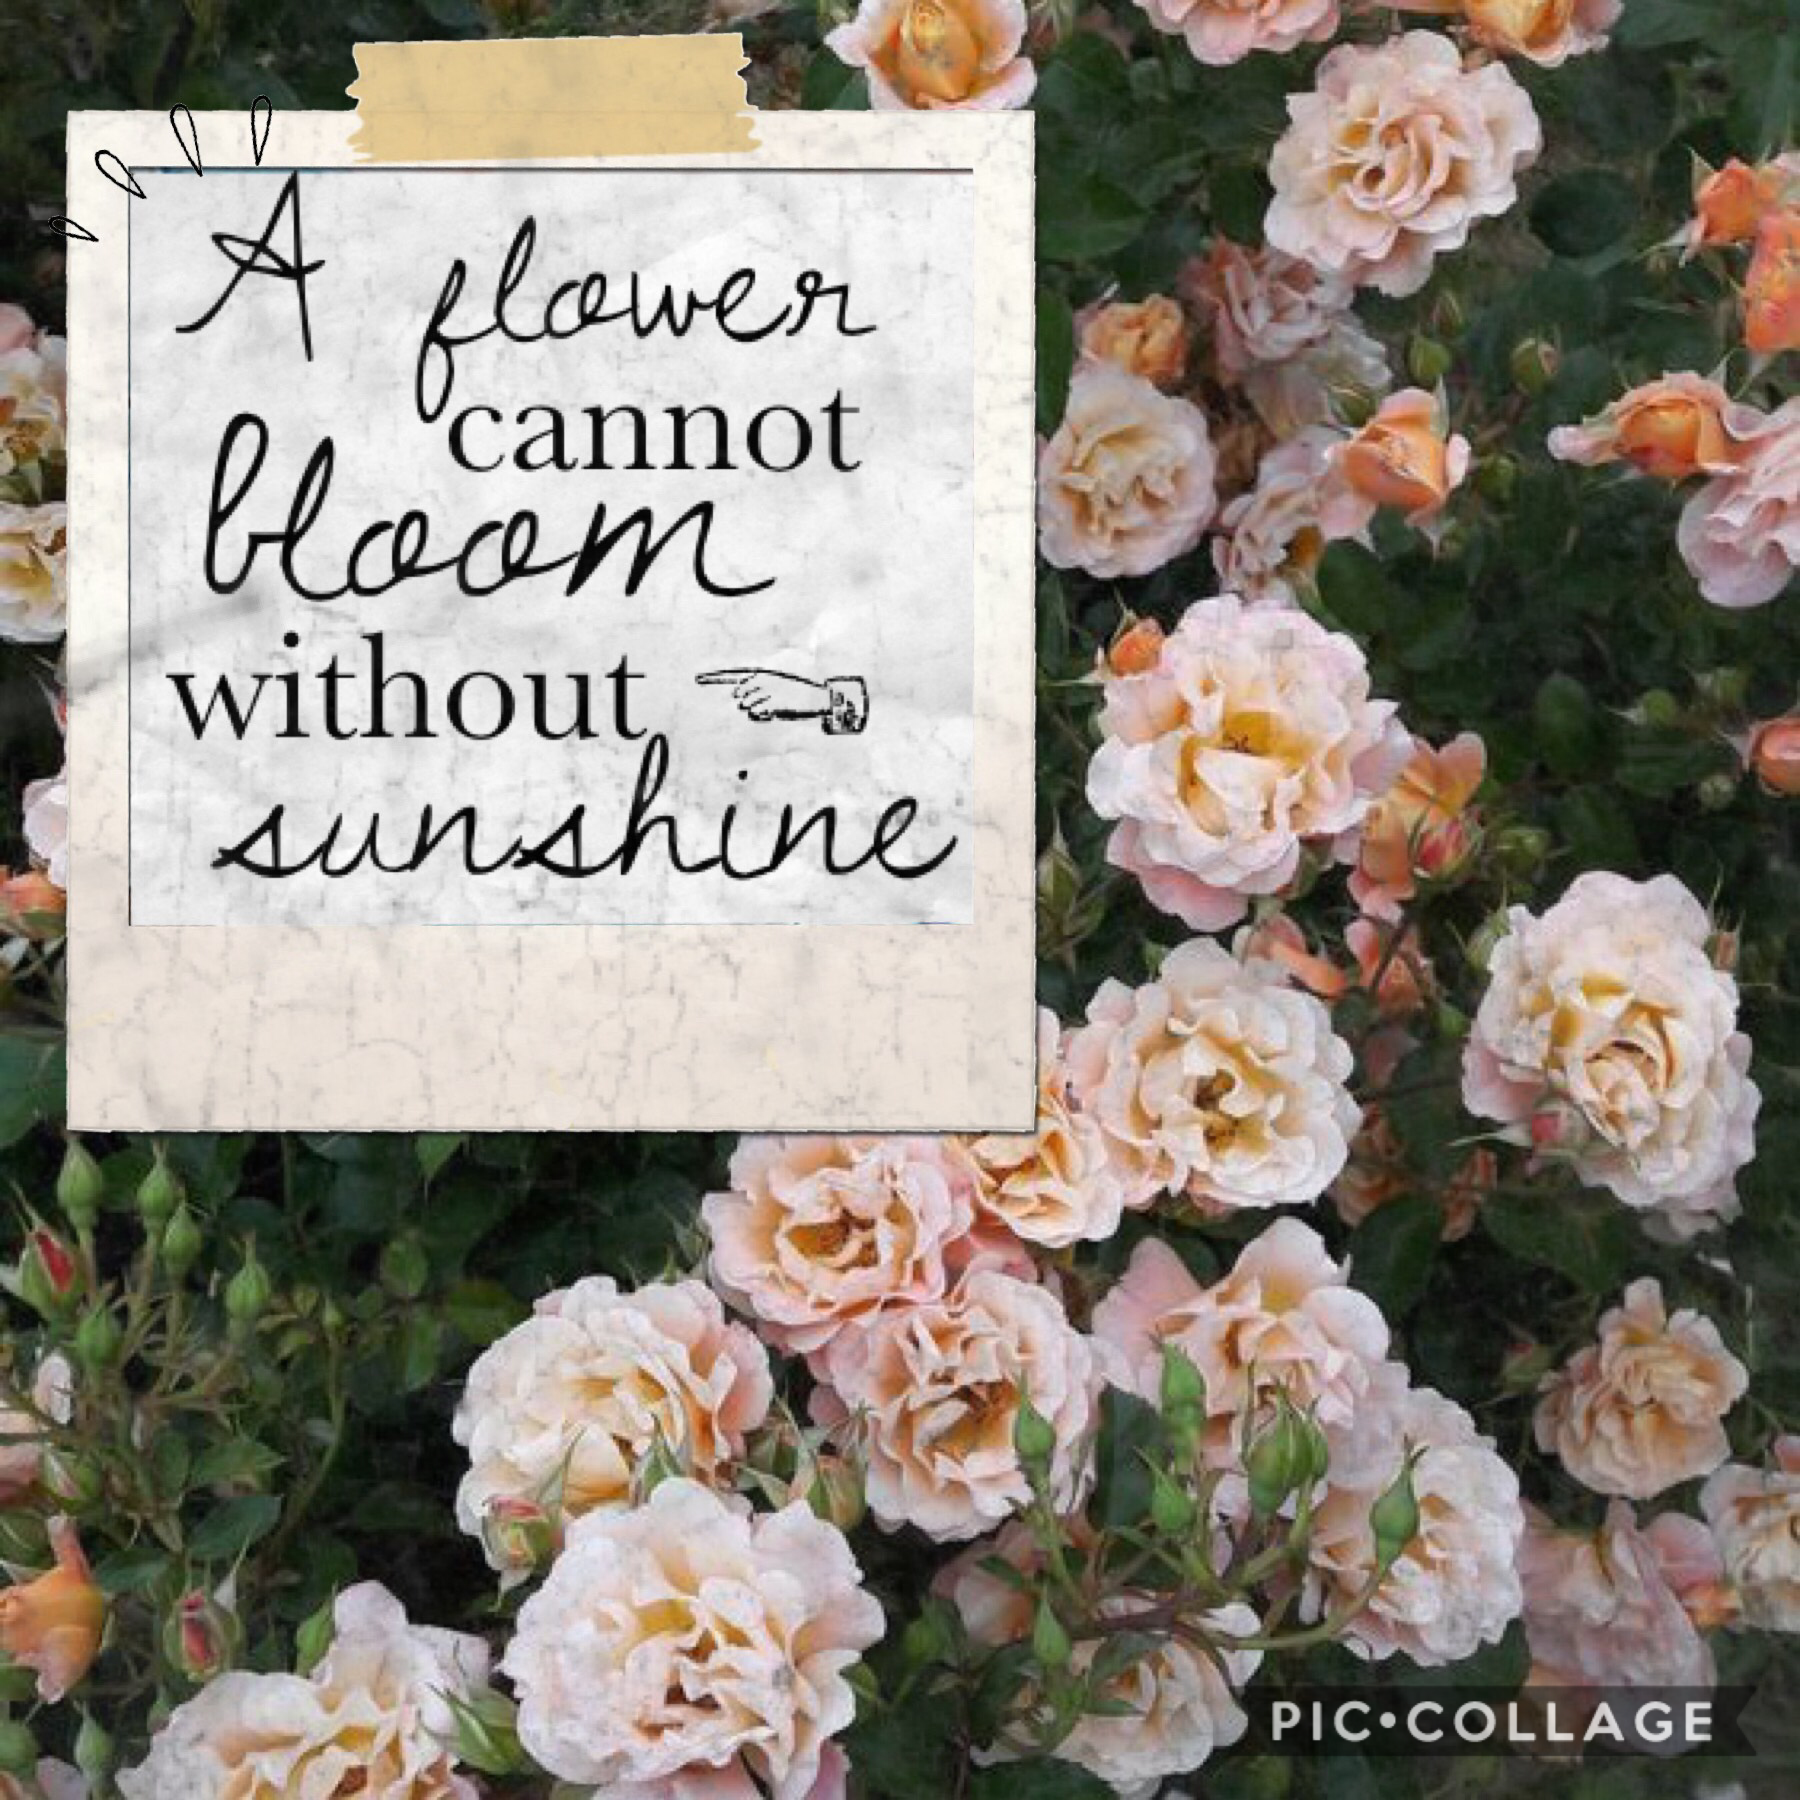 🌷🌸A flower cannot bloom without sunshine🌸🌷